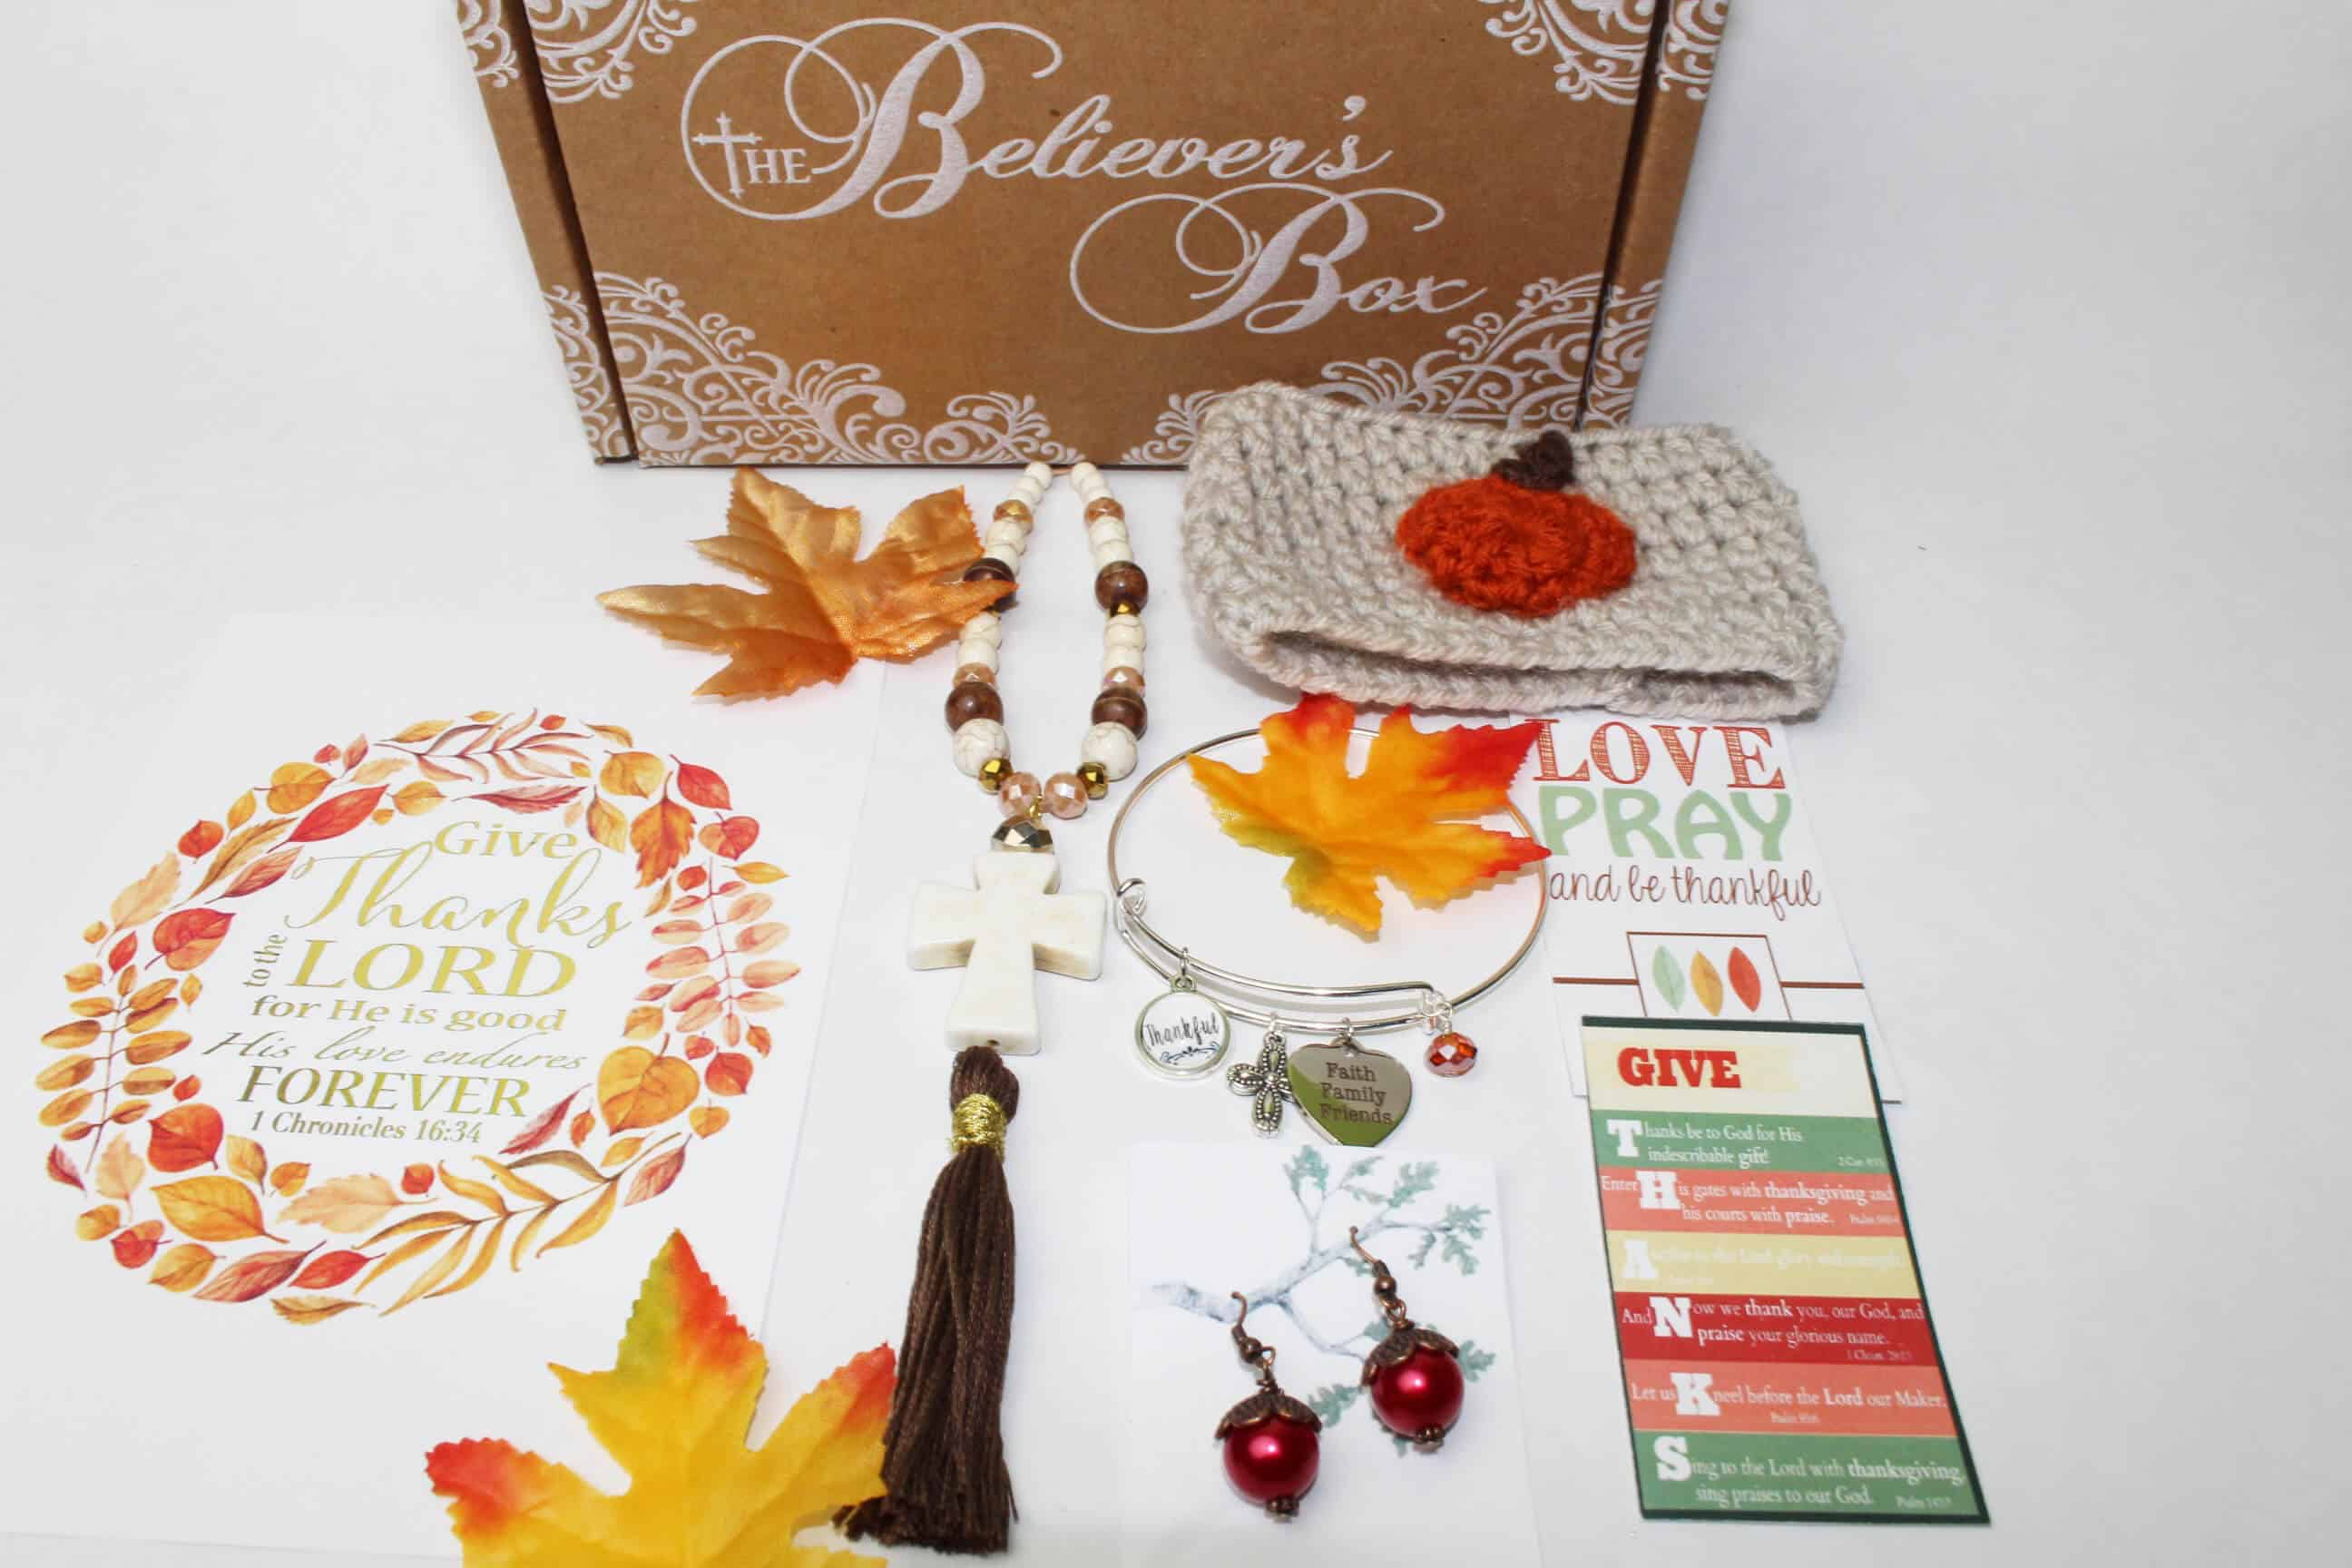 The Believer's Box Black Friday Deal: Get $10 off 6+ Month Prepaid subscriptions!